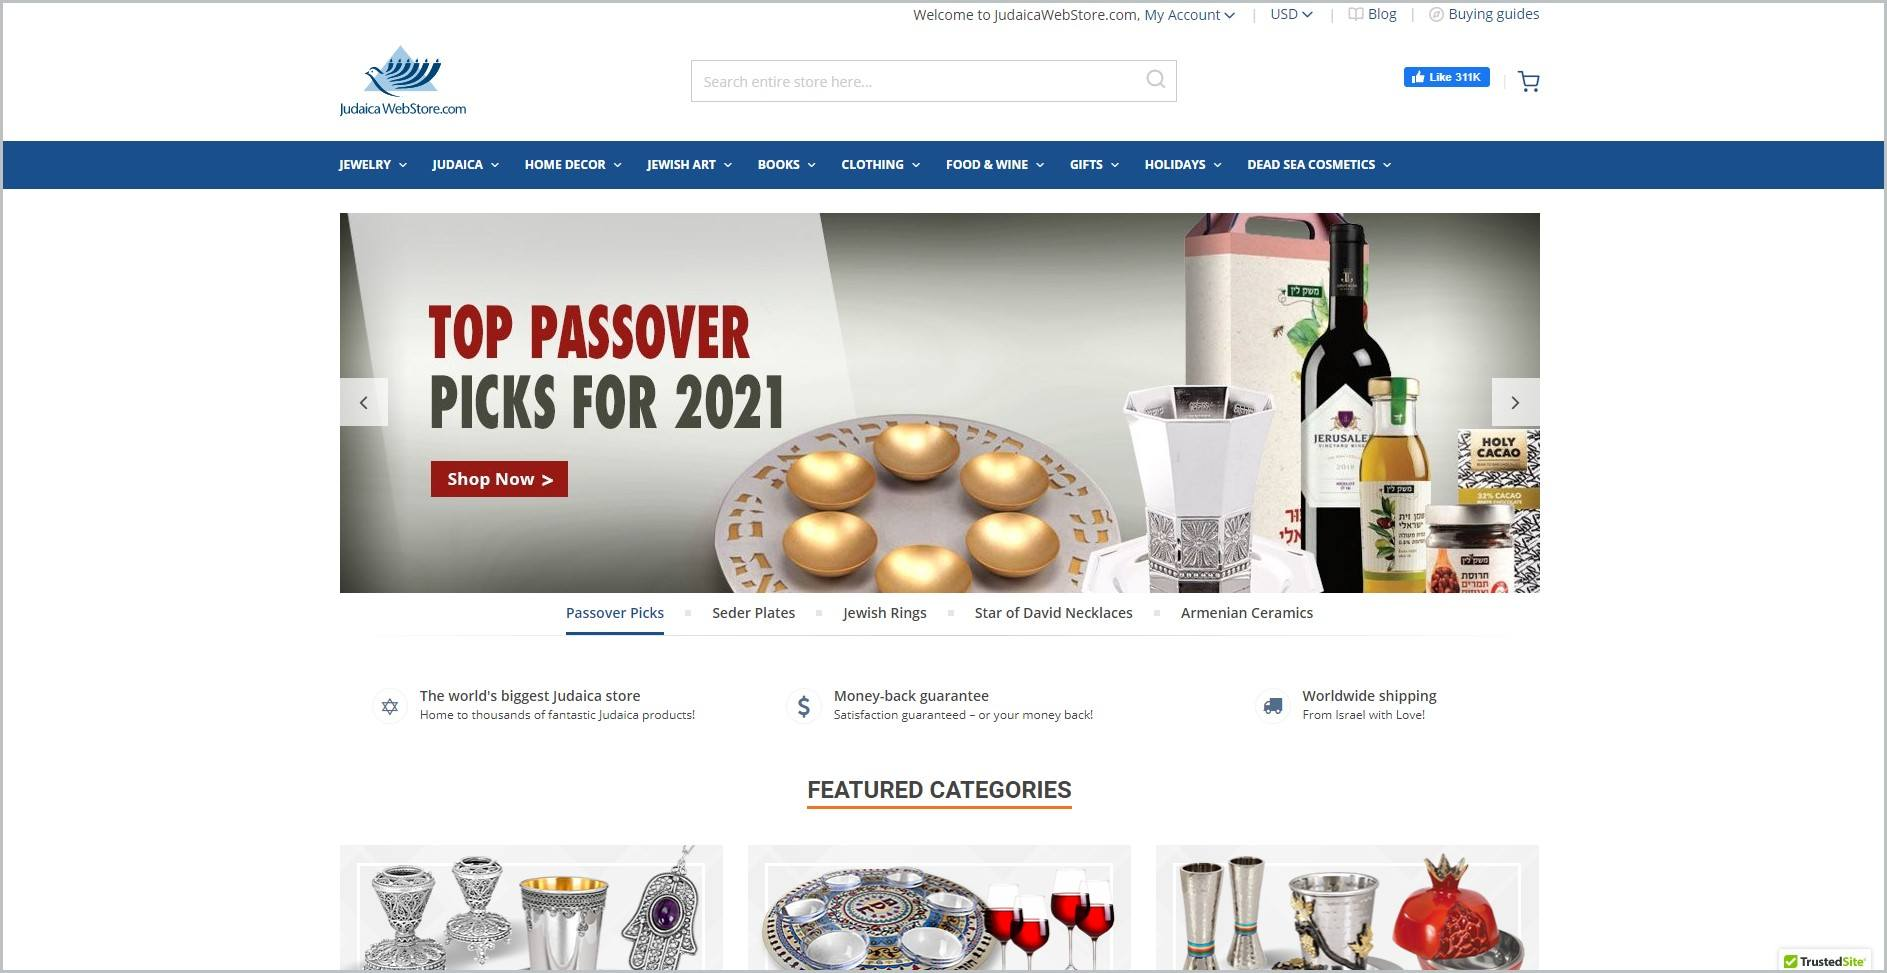 screenshot of Judaica WebStore homepage, with white header bearing the website's name and search bar, under that is a blue bar with the navigation menu, it also showcases images of the website's products